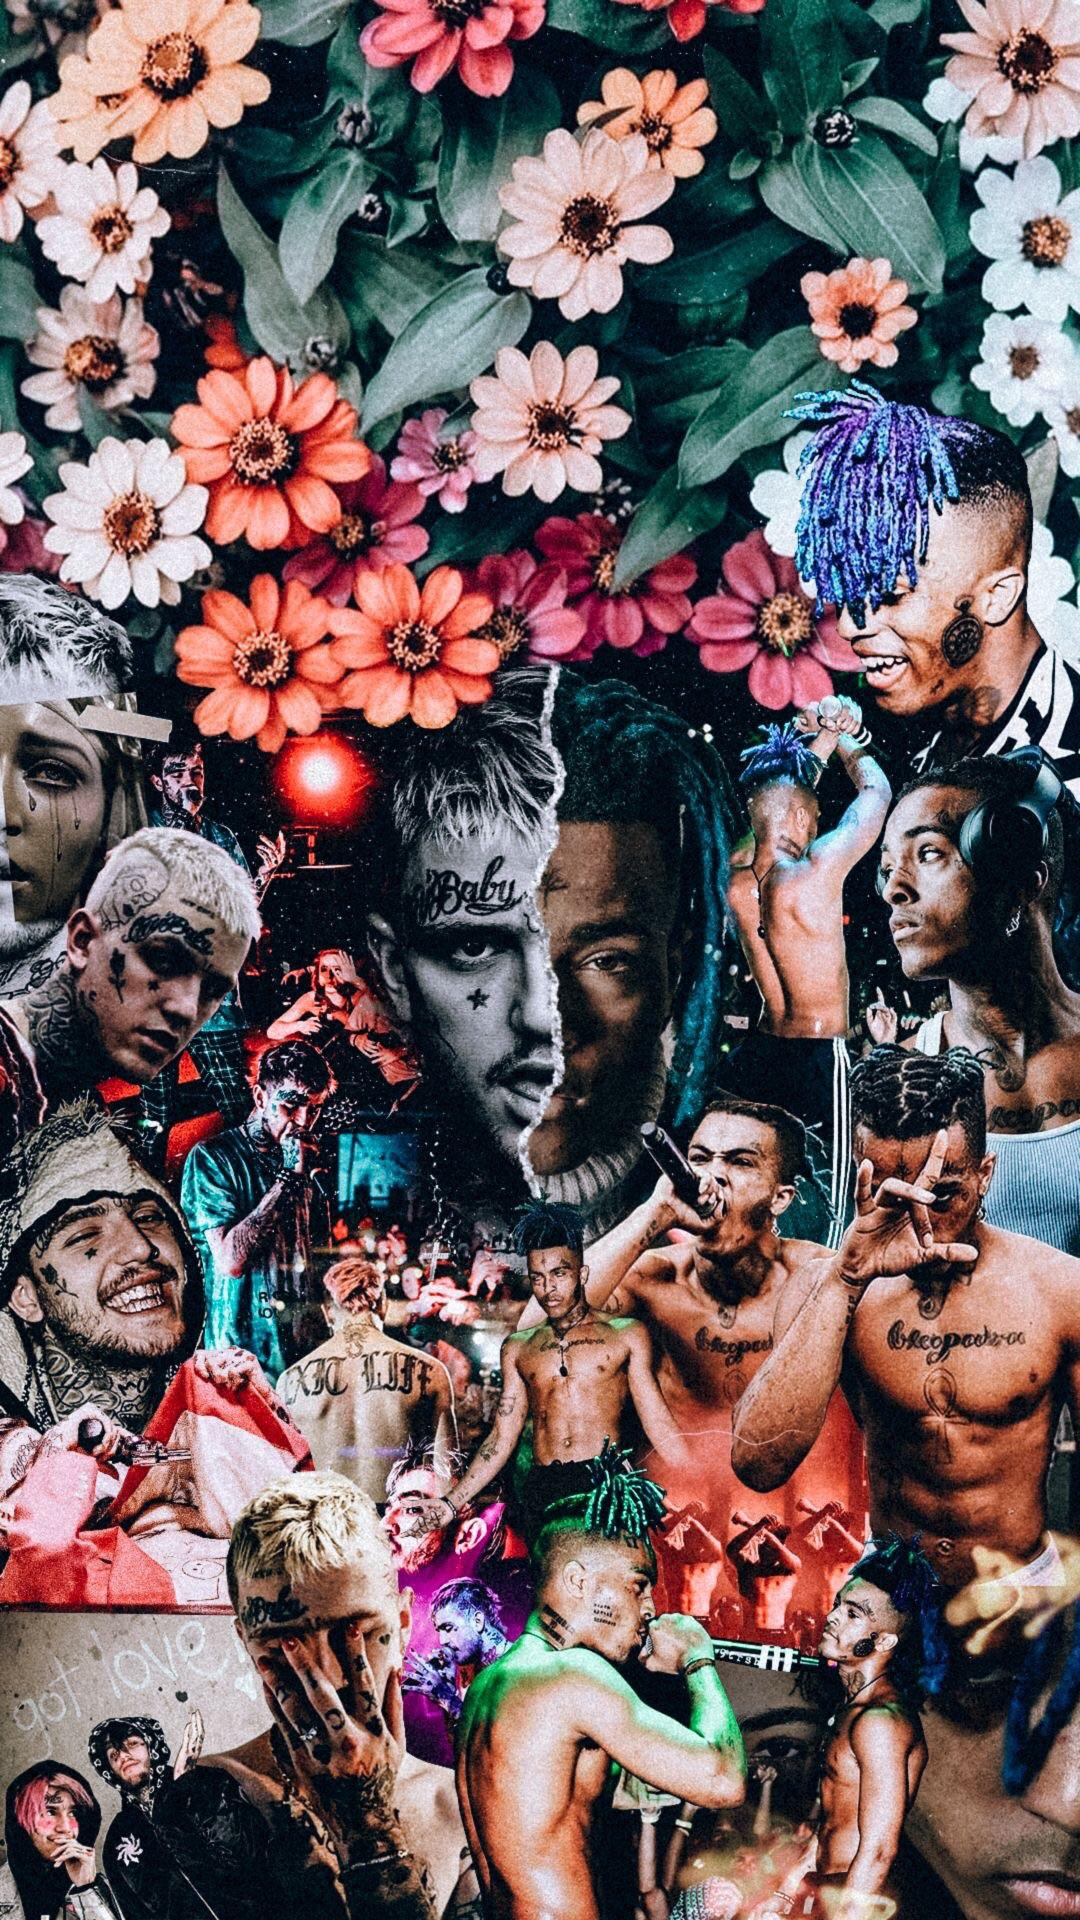 17 Lil Peep And Xxxtentacion Wallpapers On Wallpapersafari